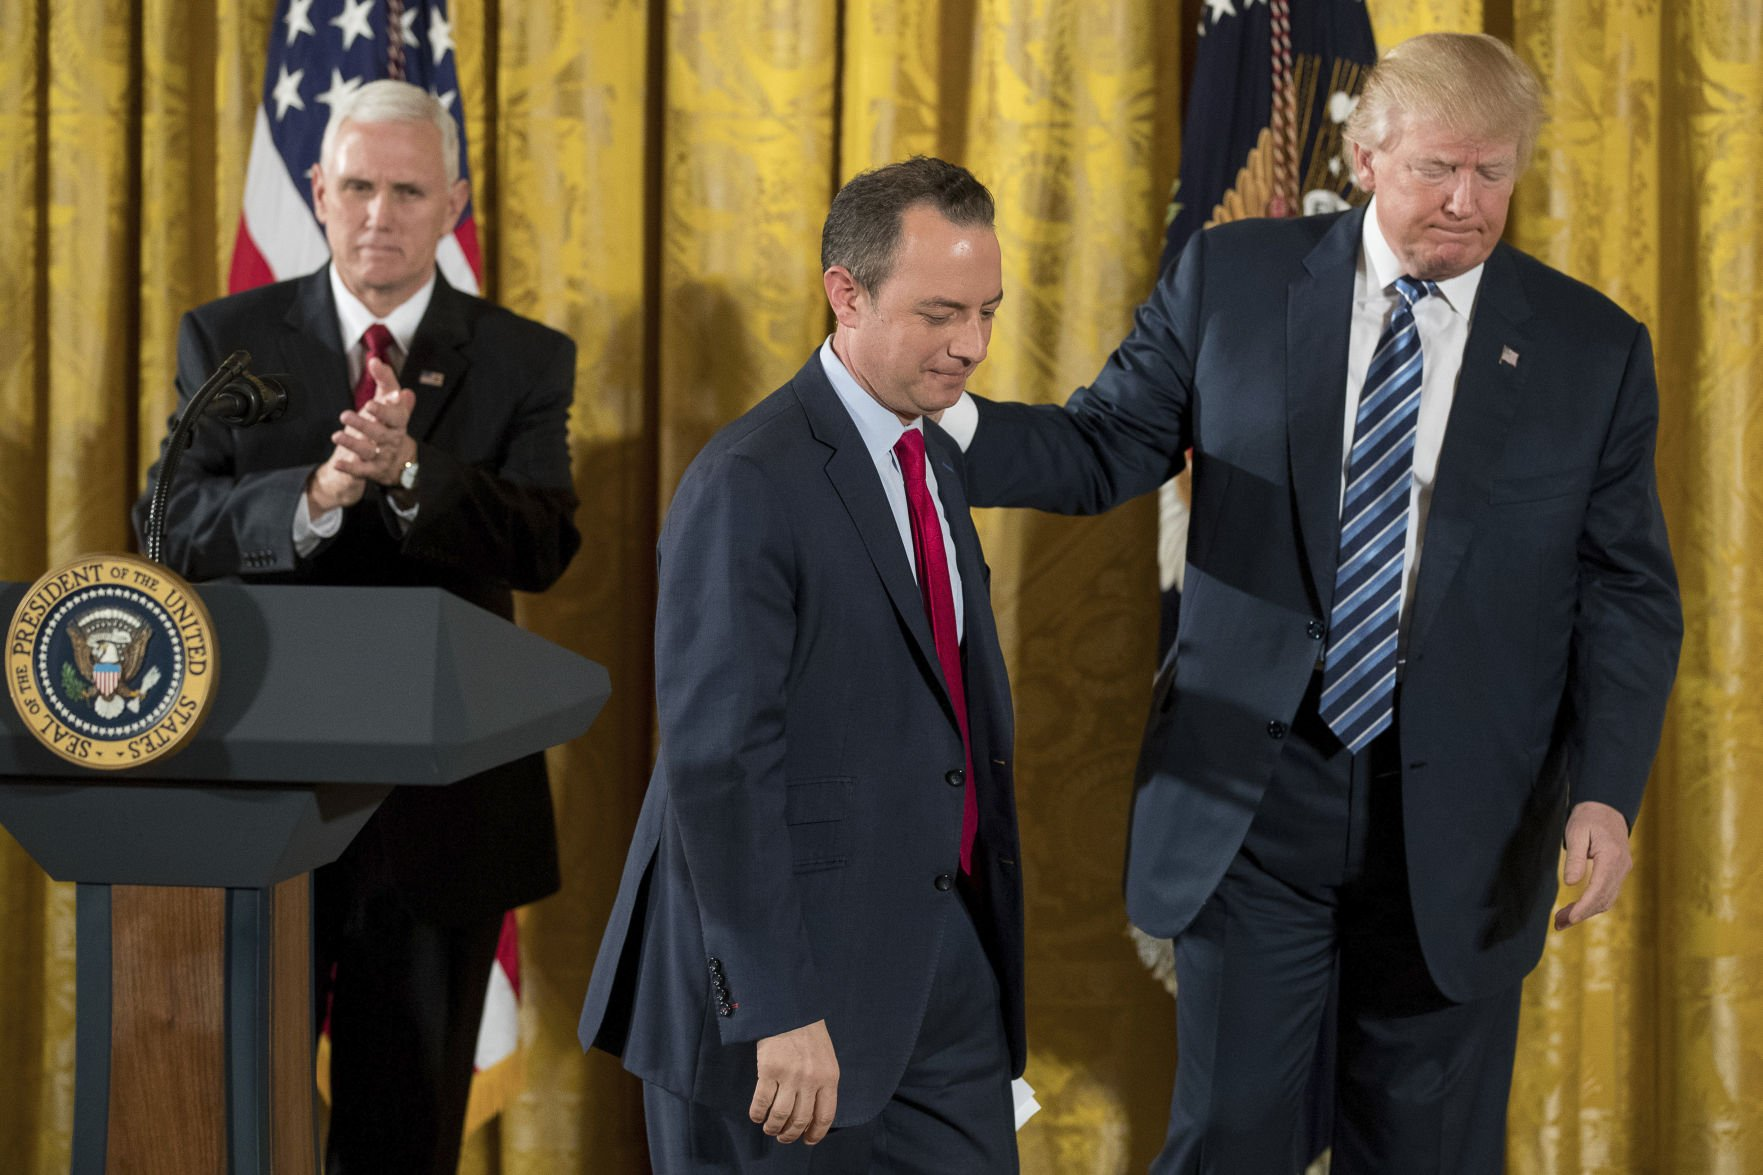 Priebus Out as Chief of Staff, Replaced with Trump 'Star' John Kelly